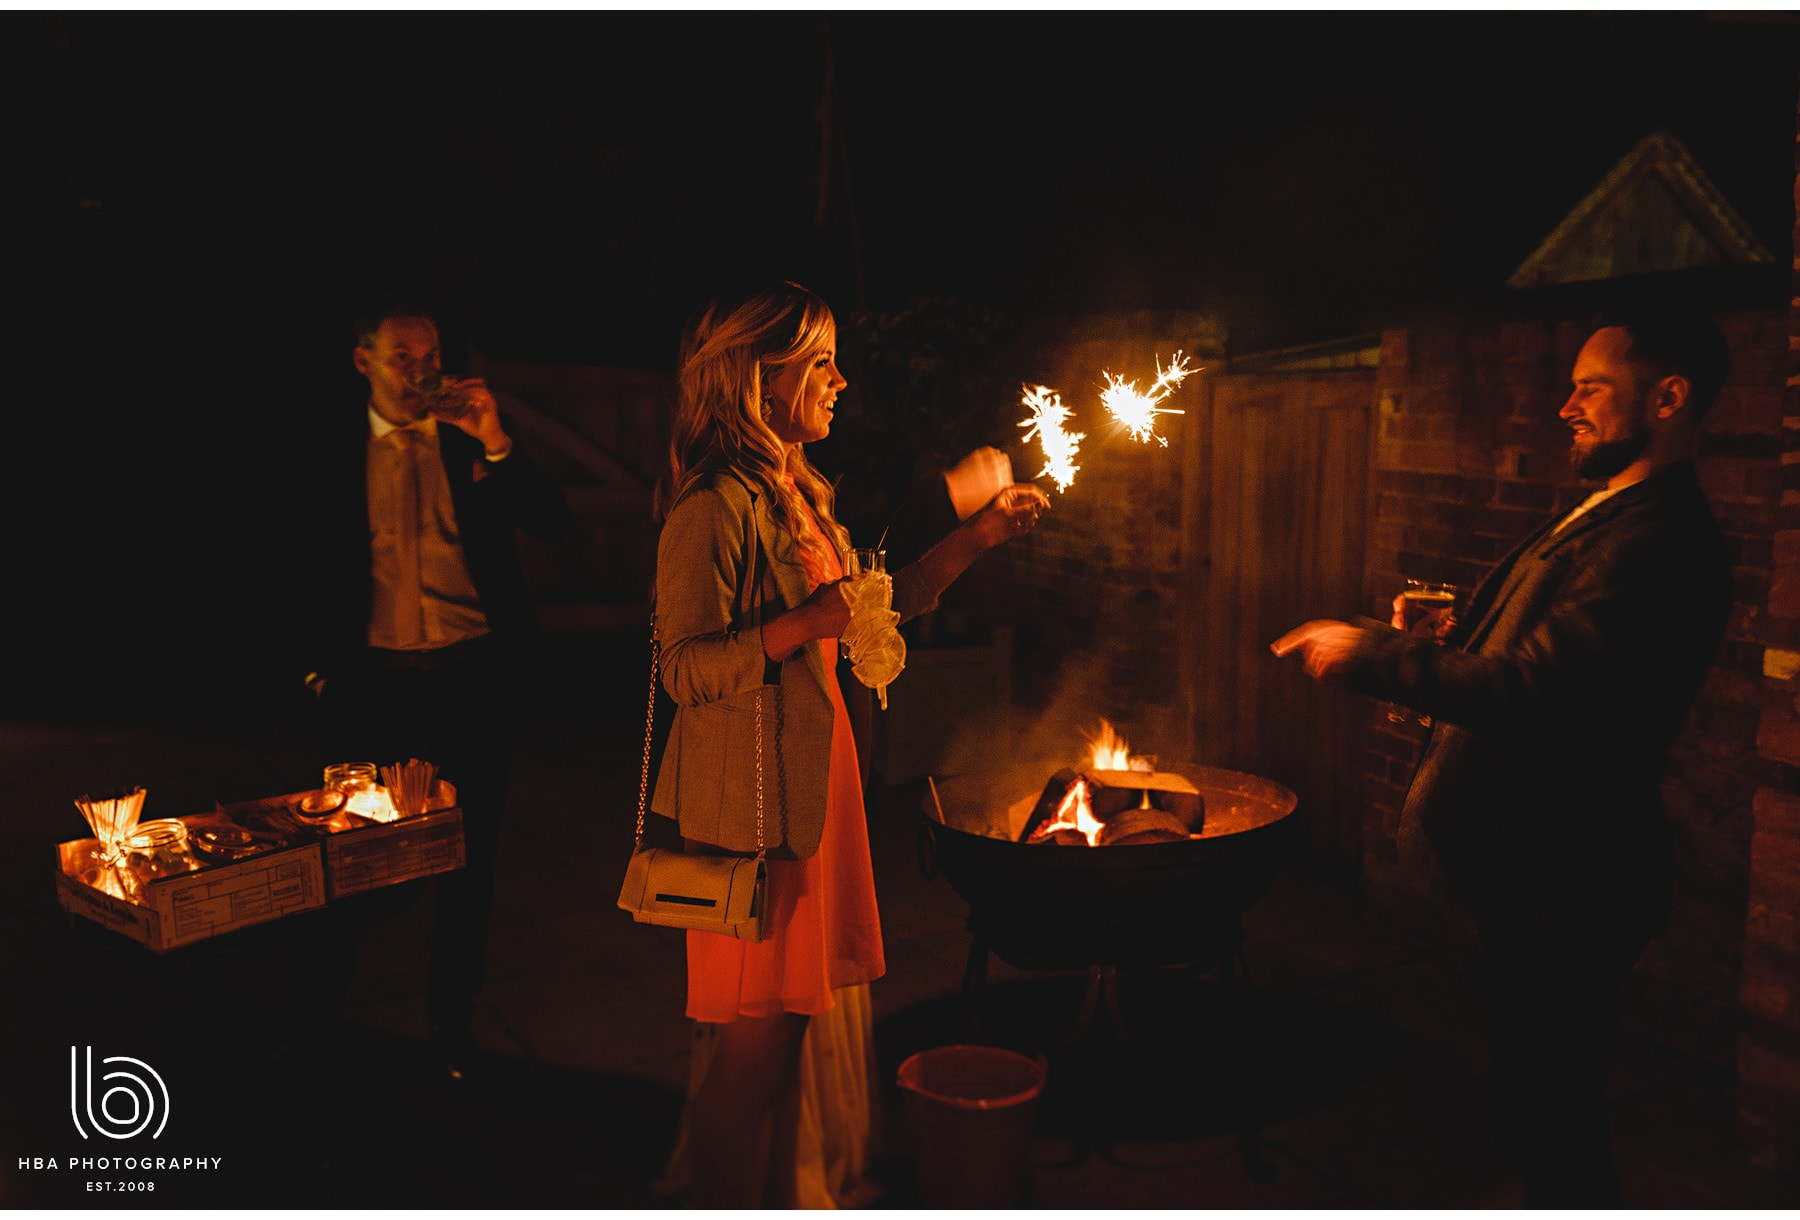 weddng guests by the fire pits